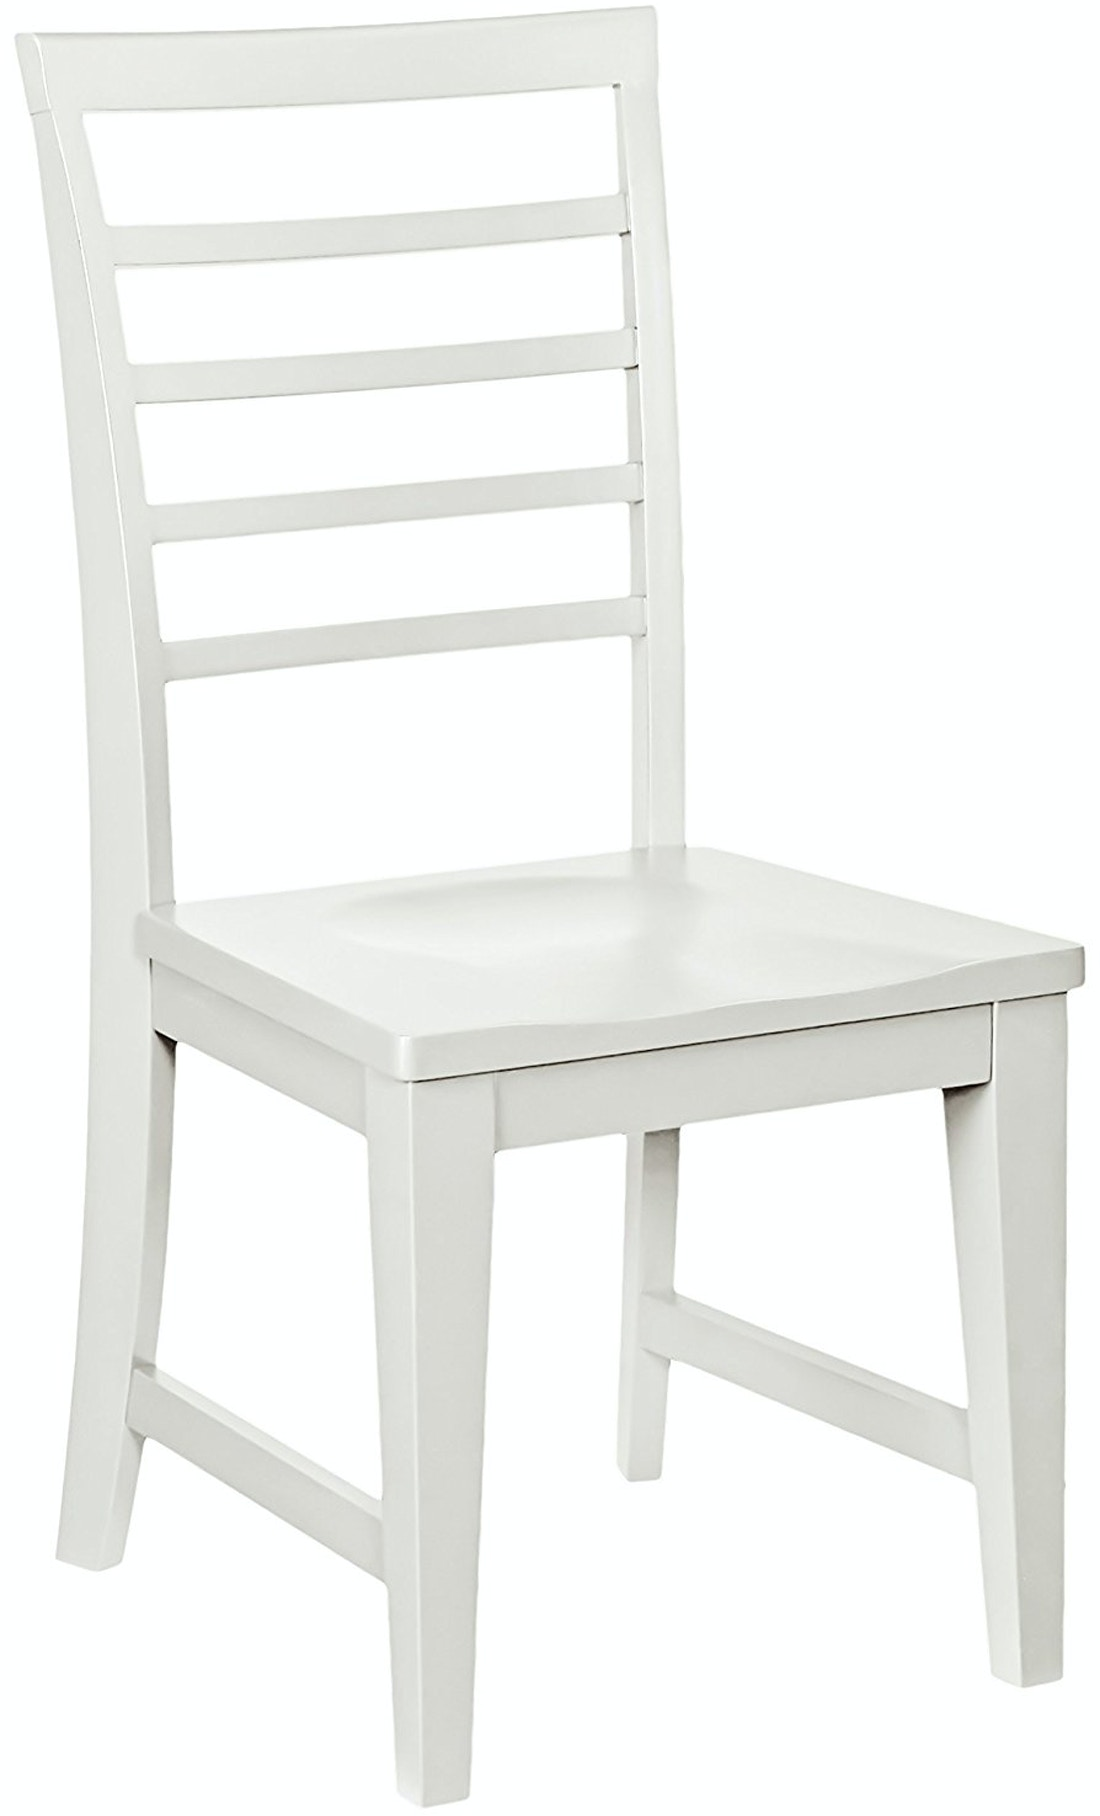 My Home Furnishings Youth Bailey White Desk Chair